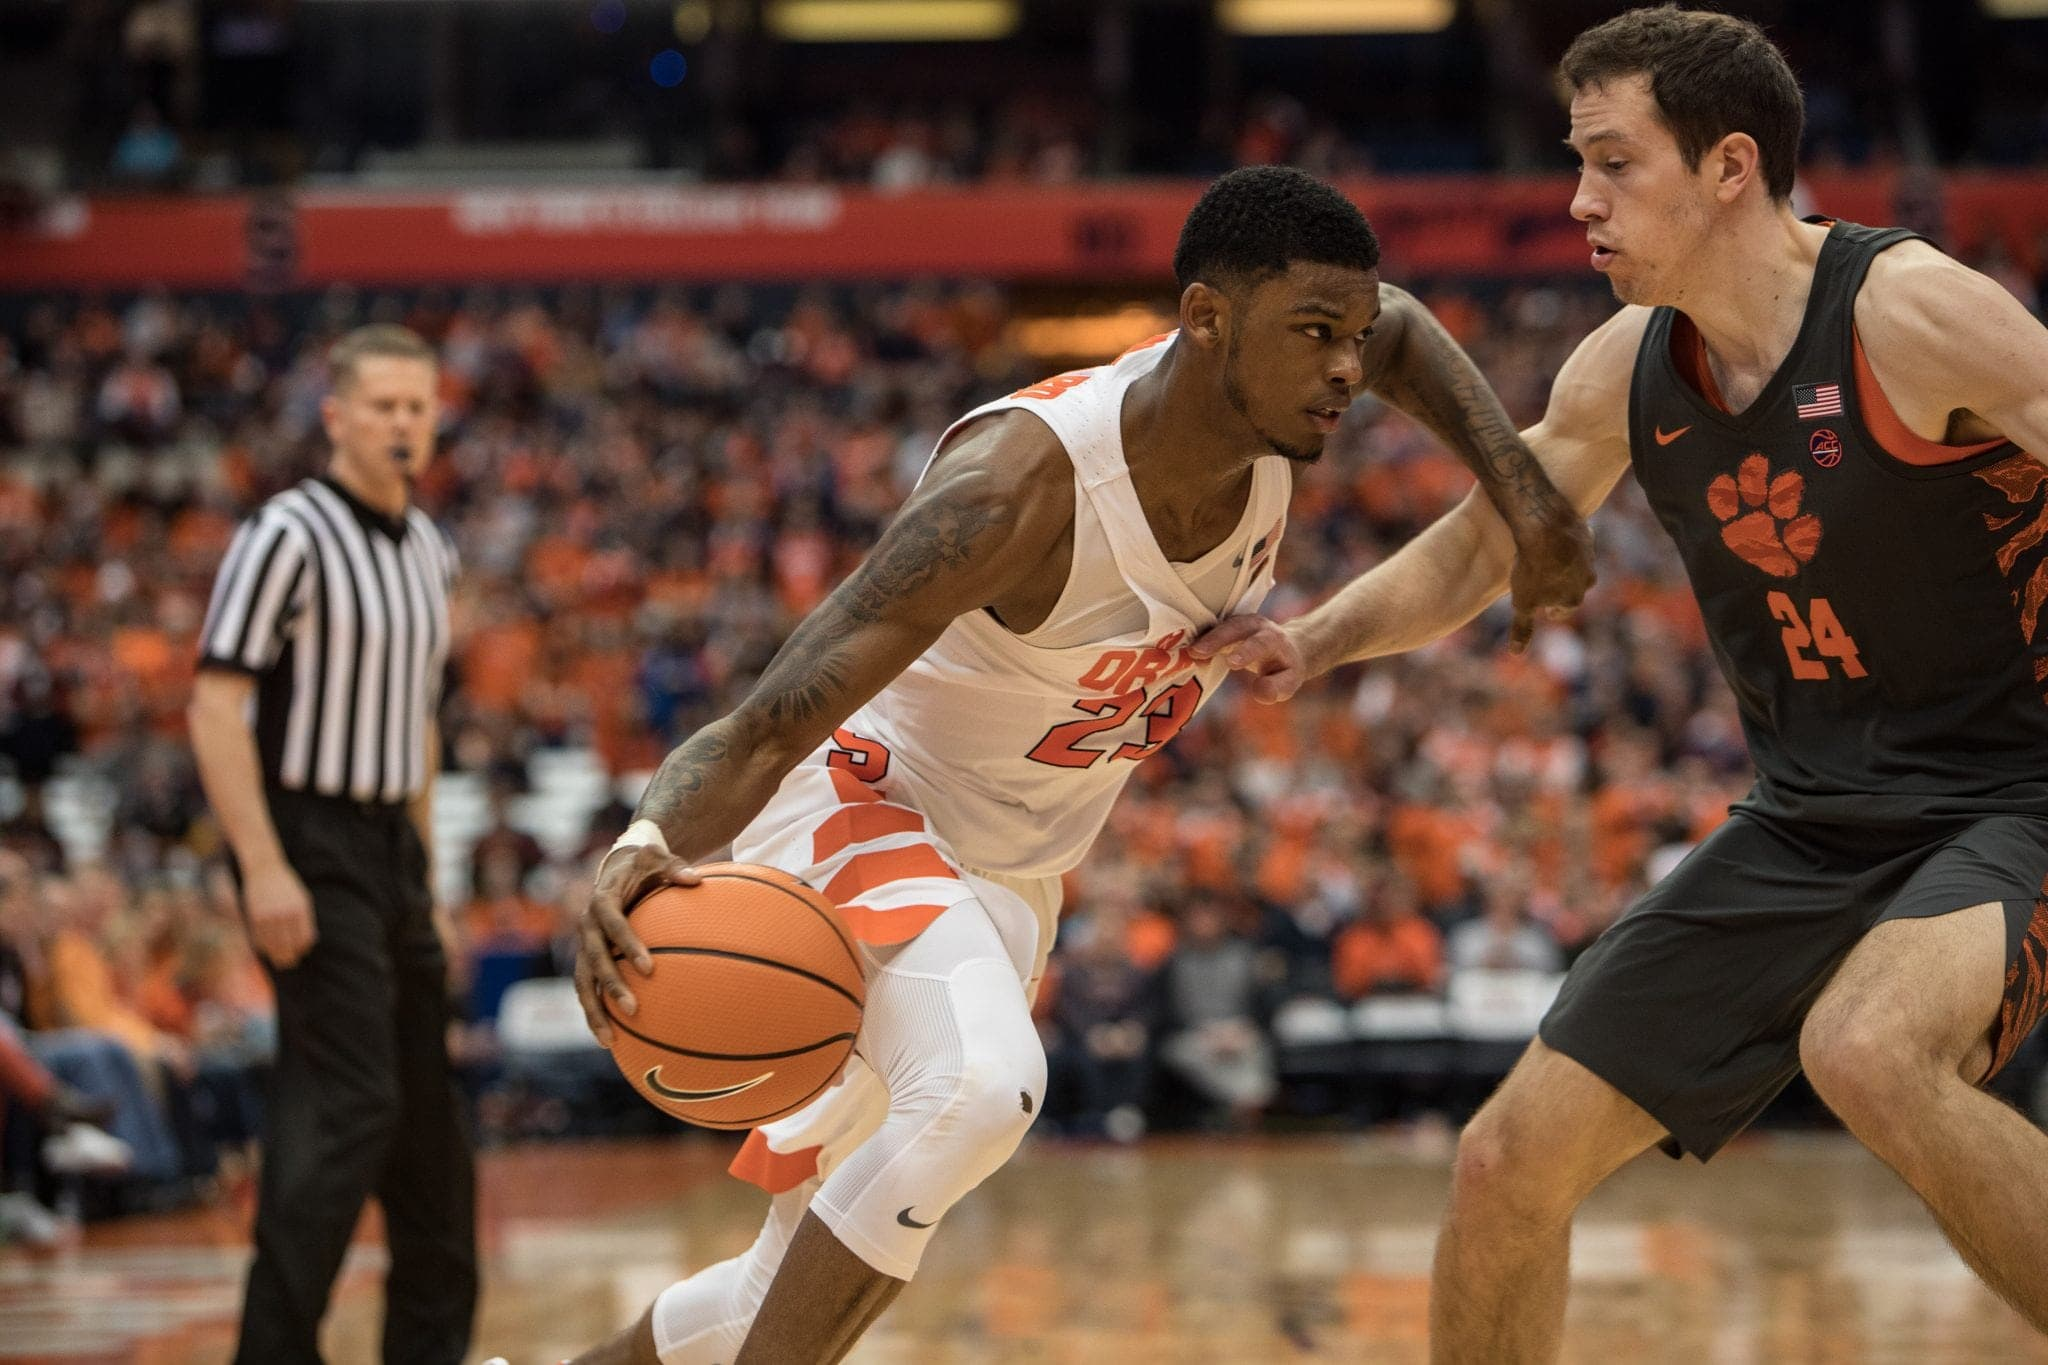 Frank Howard holds off a Clemson player as he drives for the basket.